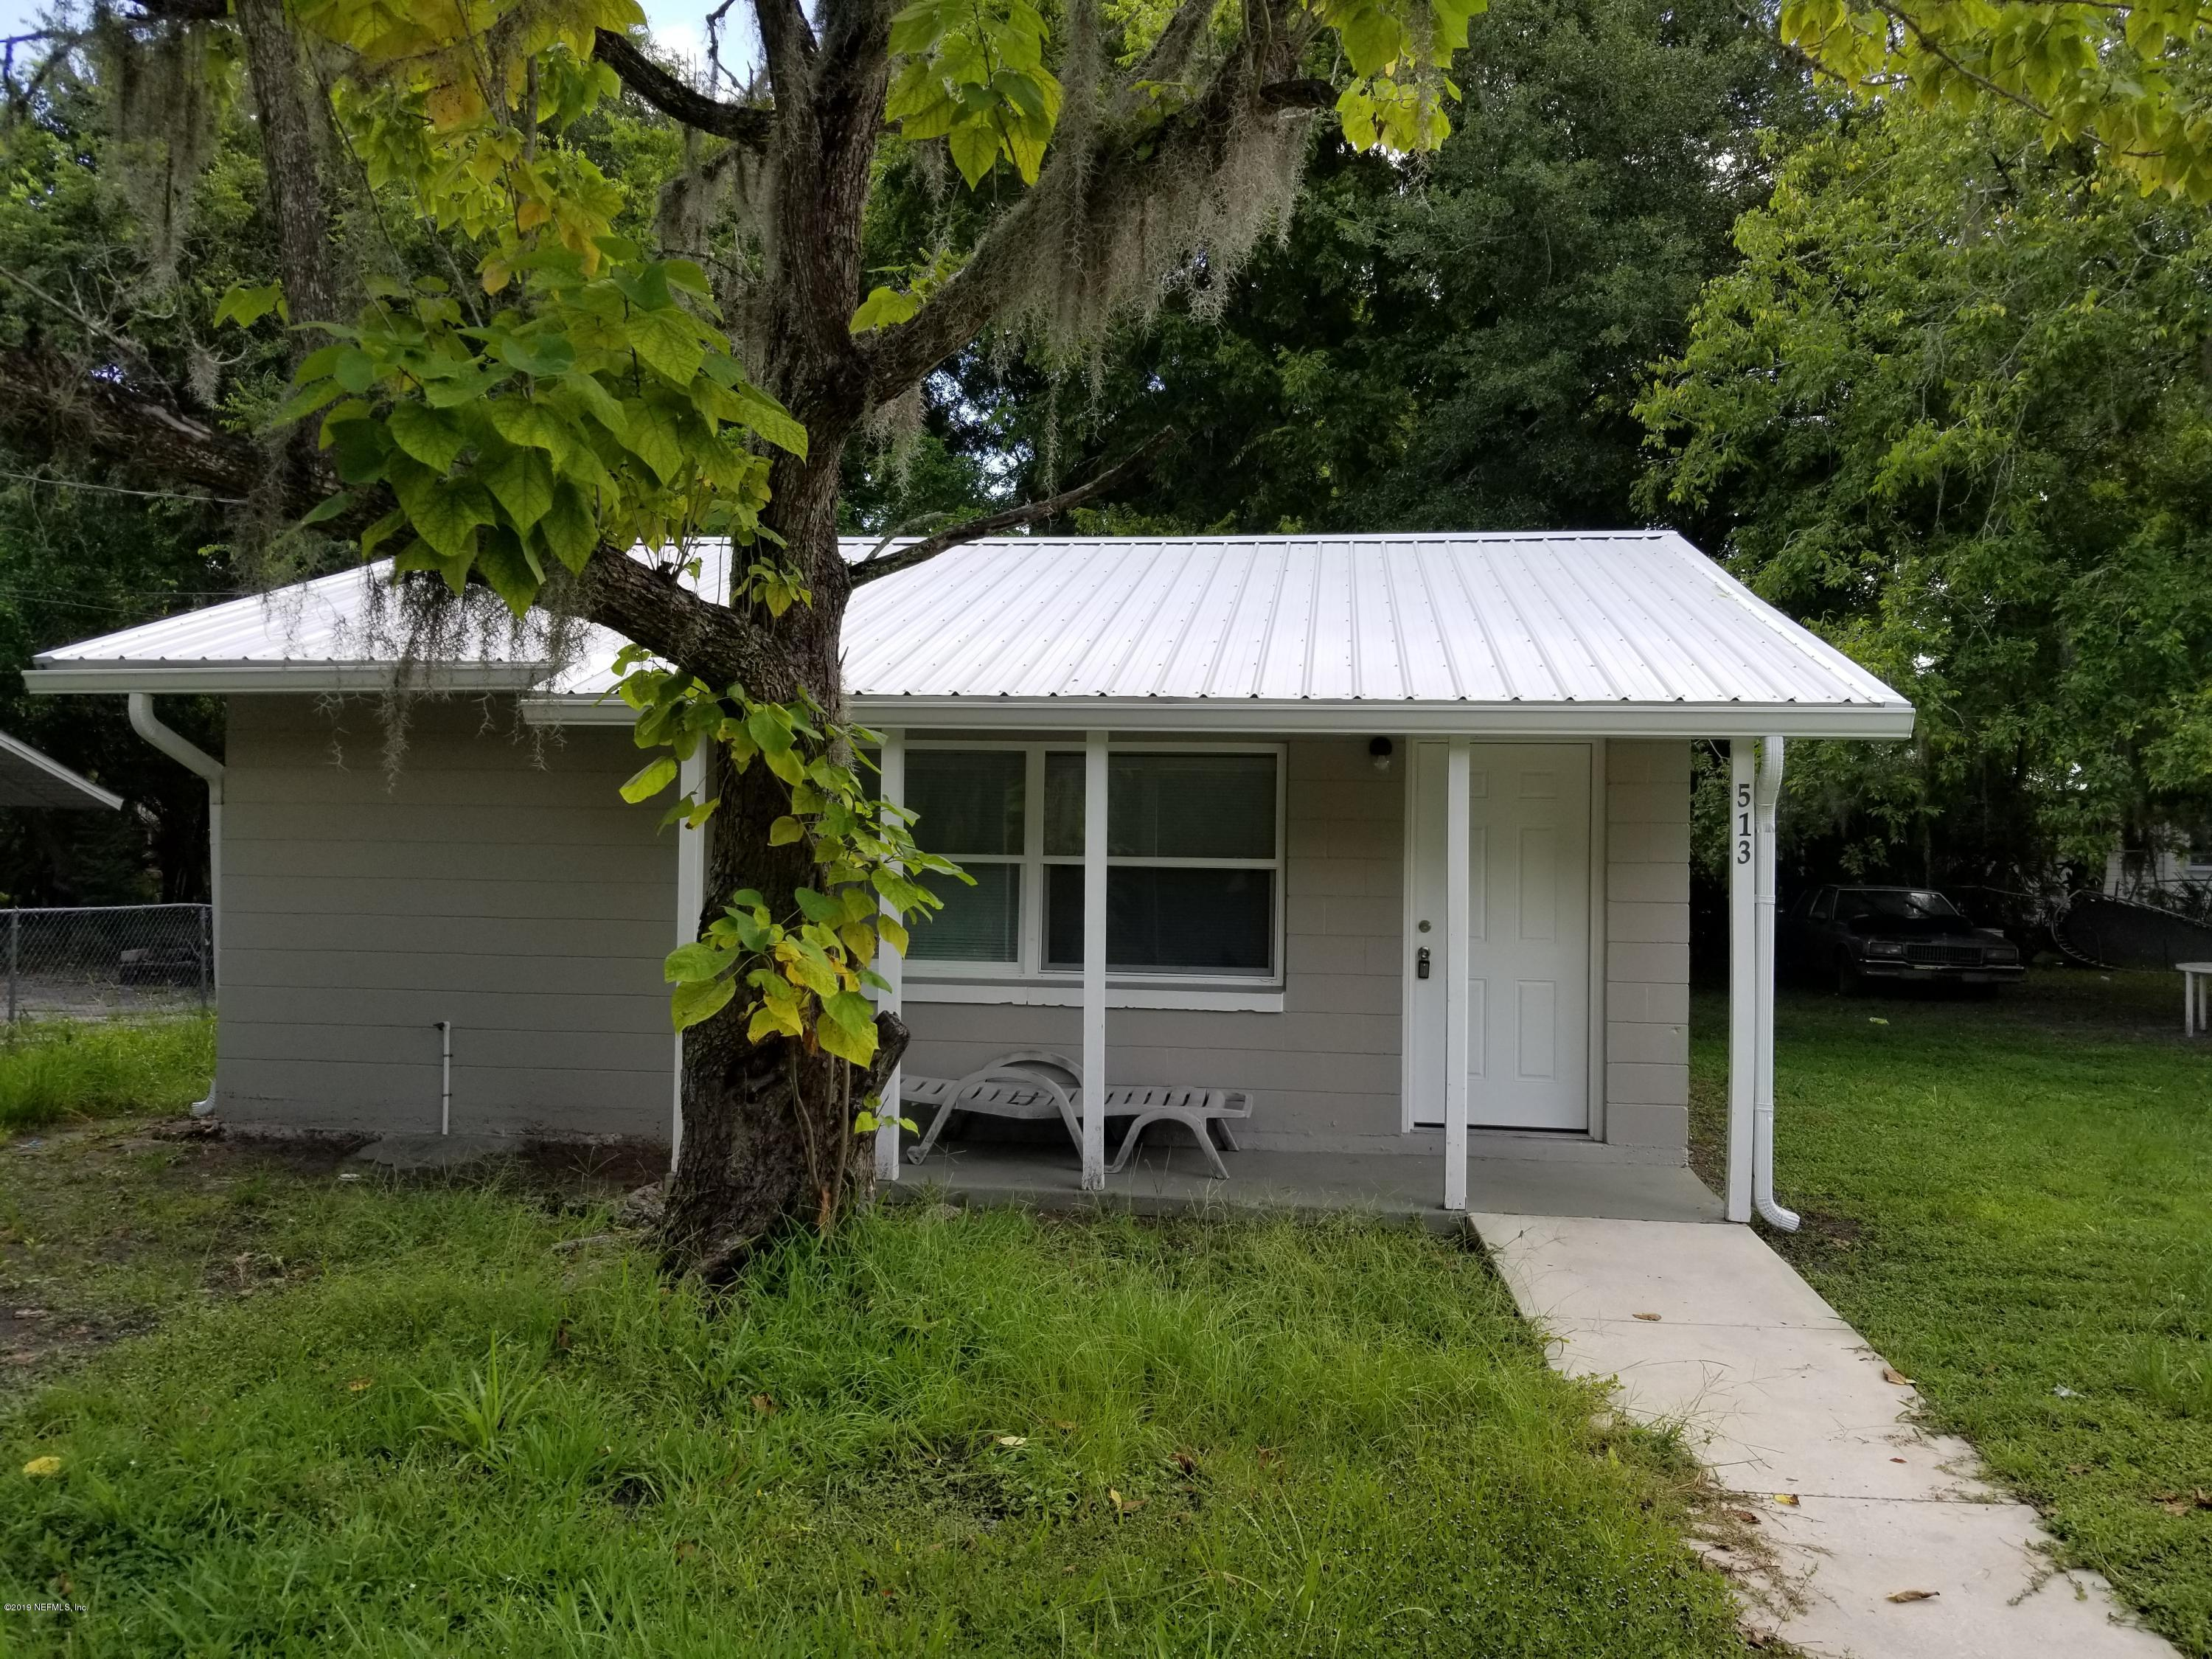 513 11TH, PALATKA, FLORIDA 32177, 1 Bedroom Bedrooms, ,1 BathroomBathrooms,Residential,For sale,11TH,1007562